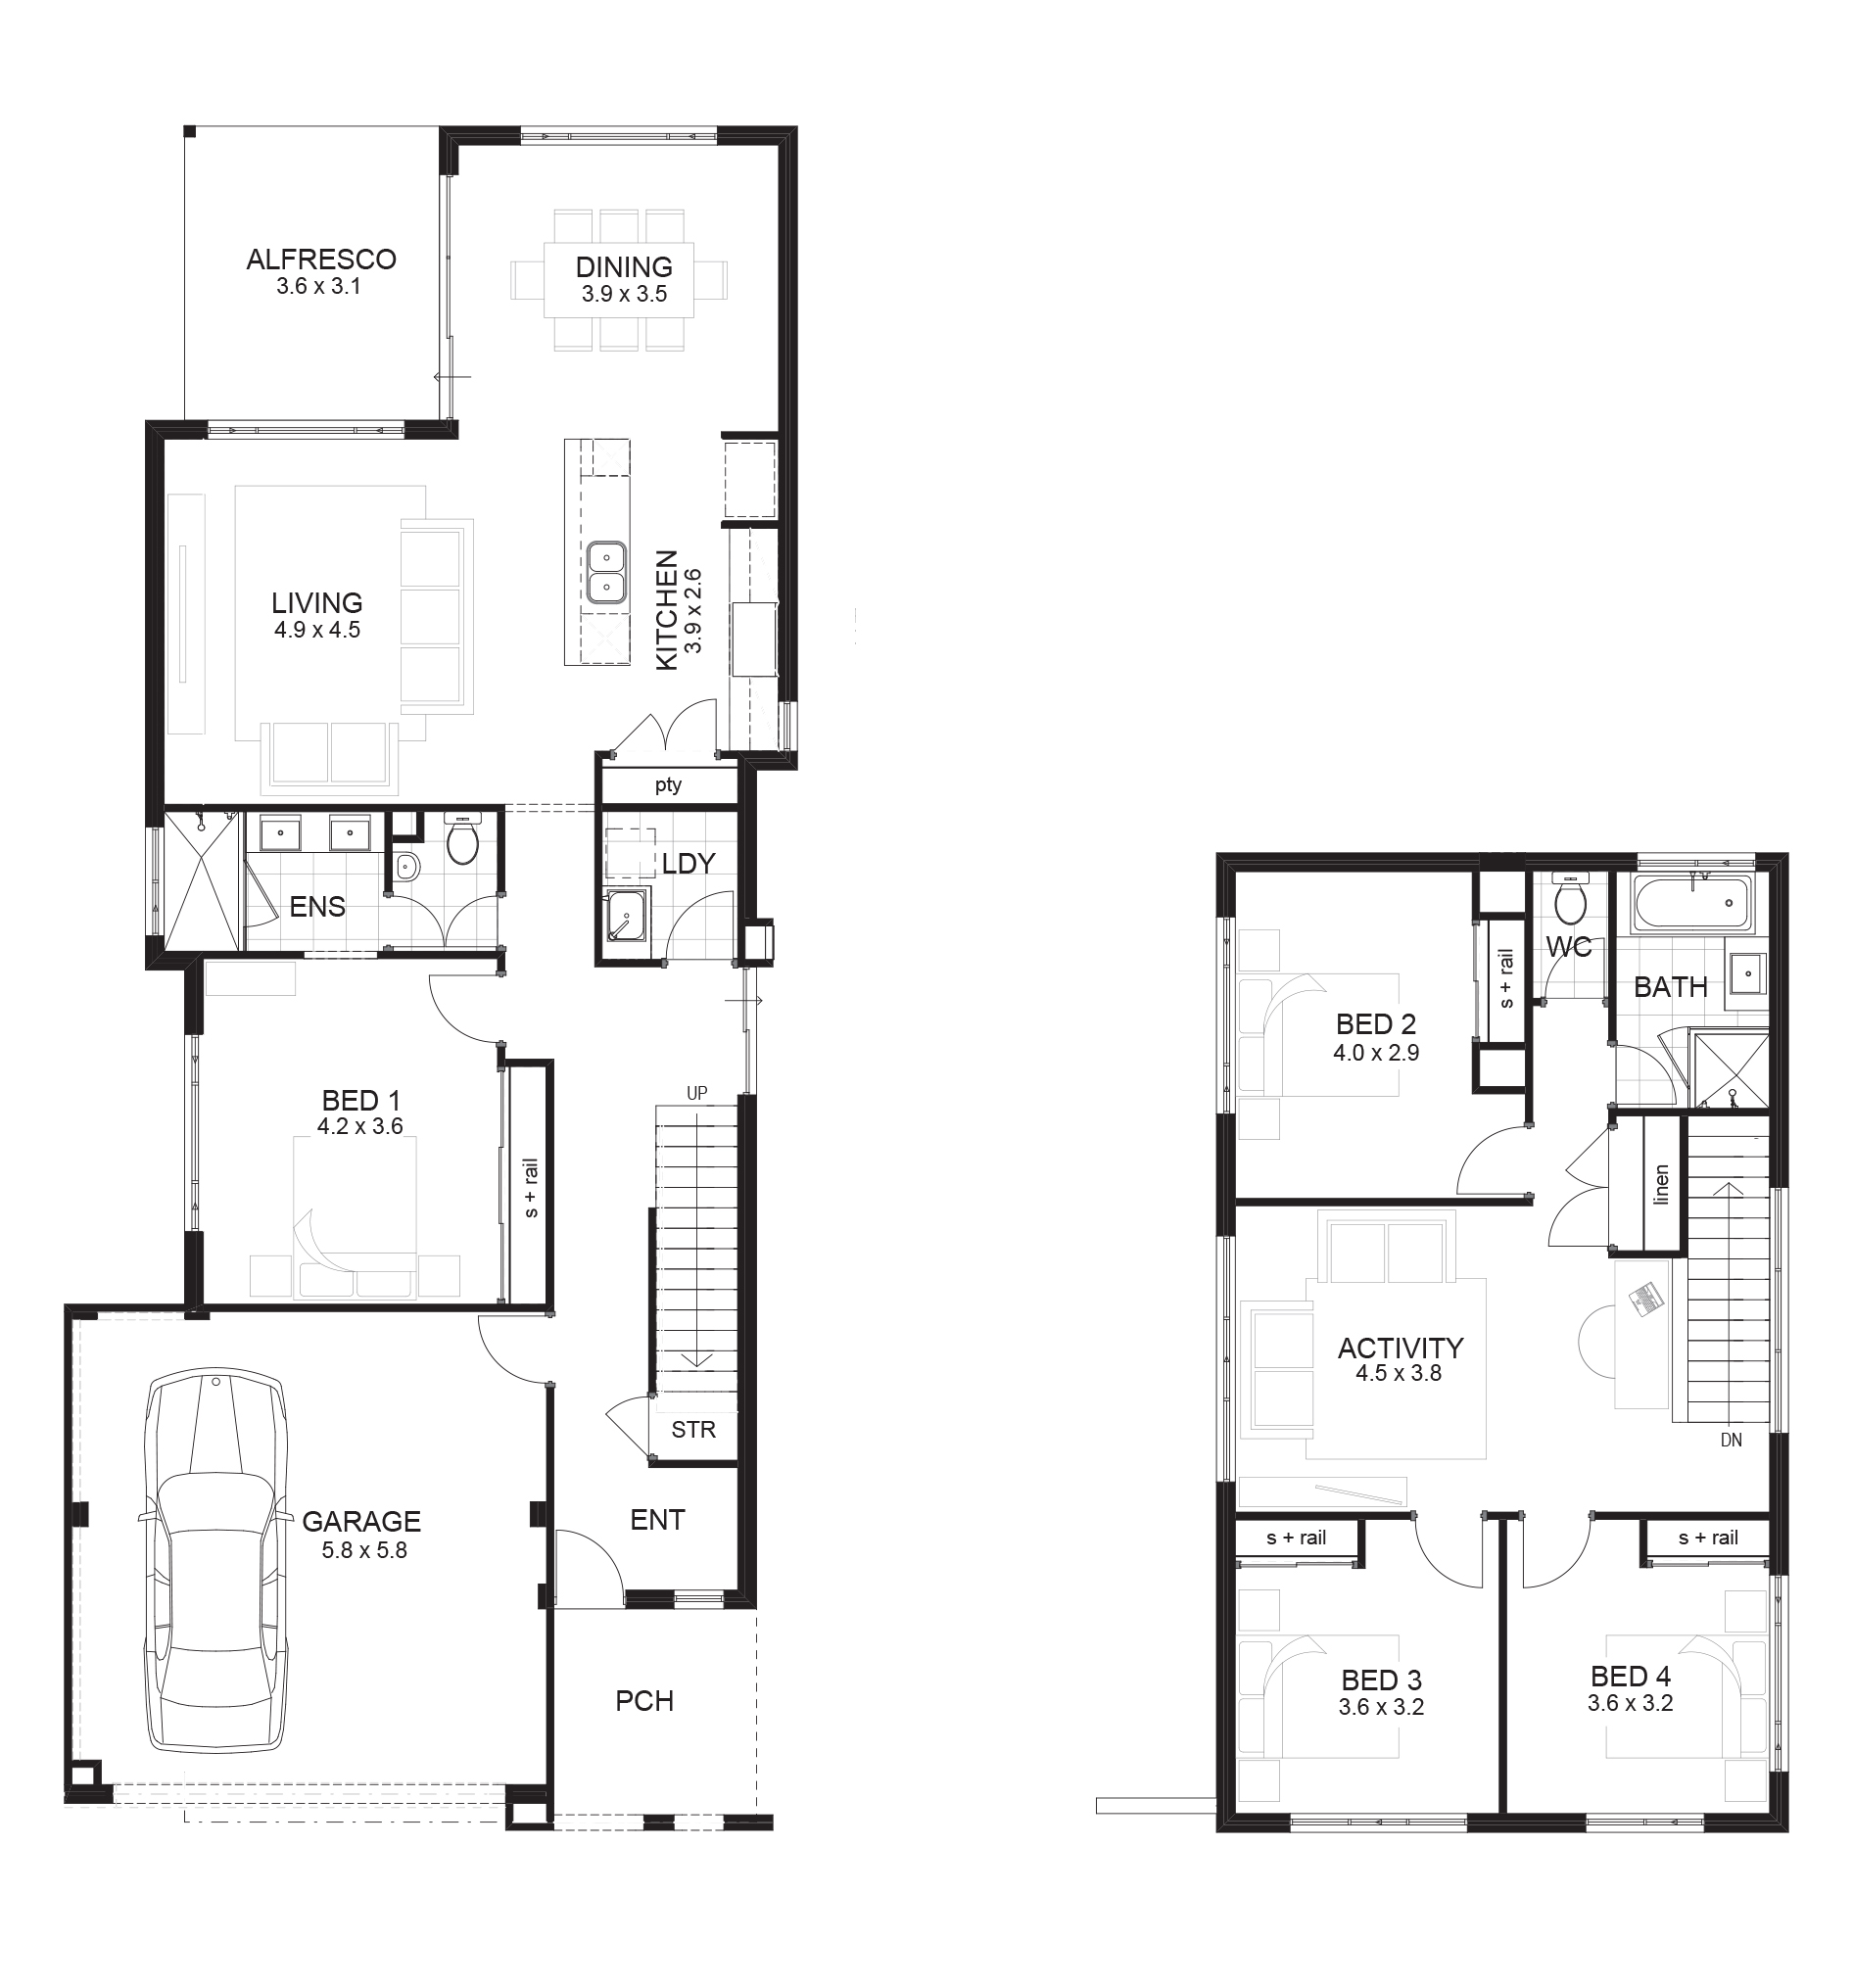 Small 4 bedroom house plans australia Small bathroom floor plans australia